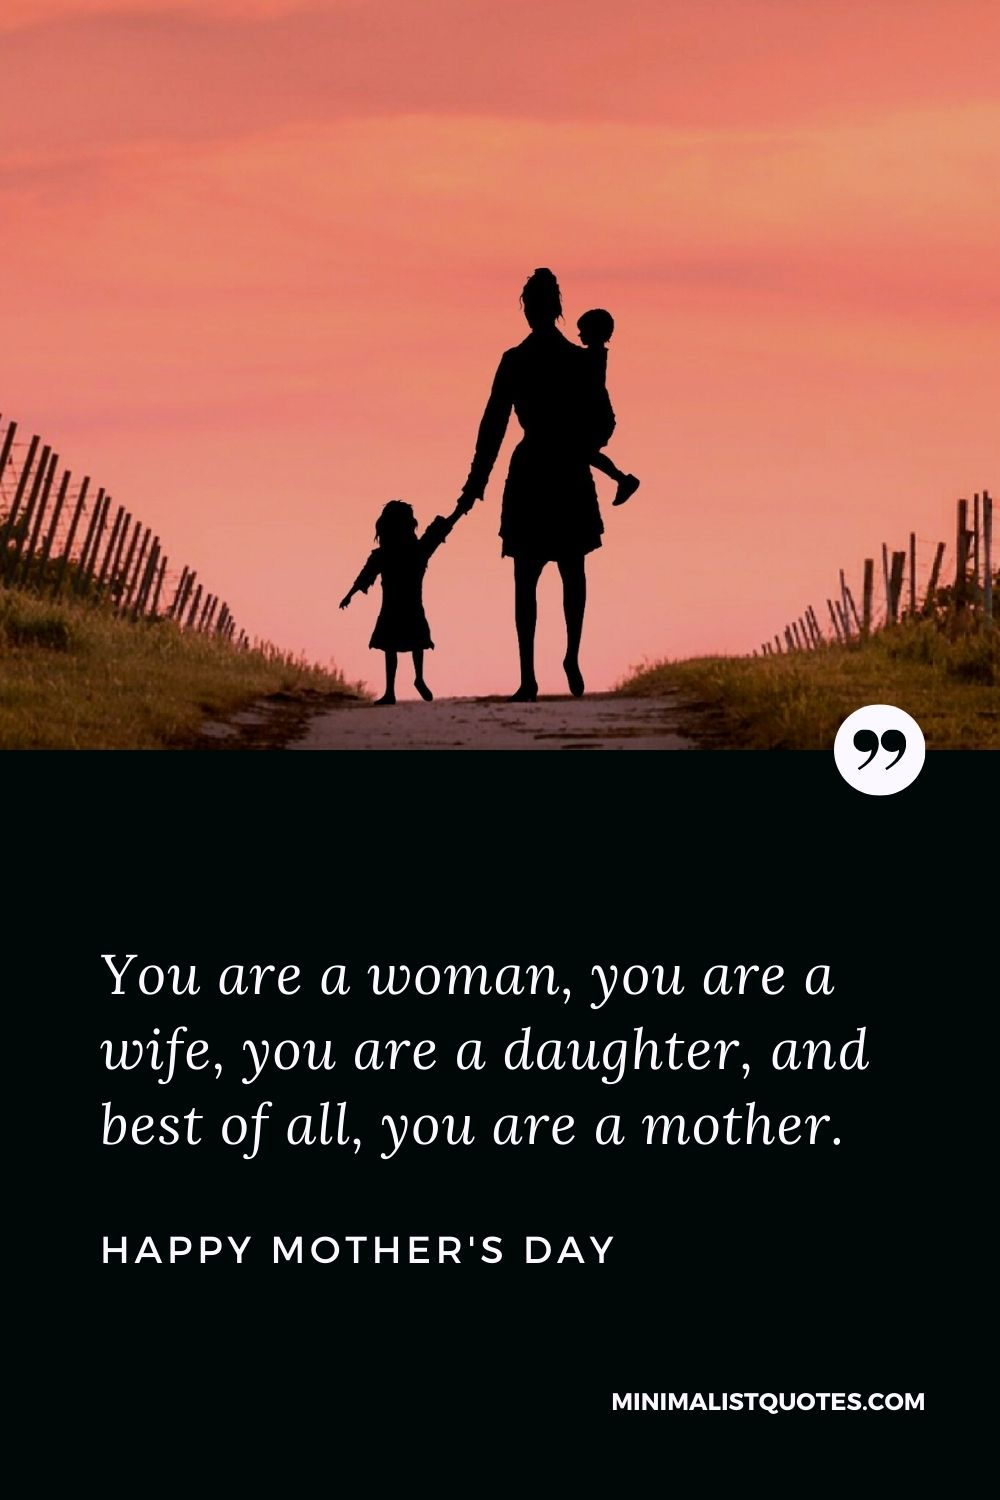 Mother's day wish, message & quote with HD image: You are a woman, you are a wife, you are a daughter, and best of all, you are a mother. Happy Mother's Day!